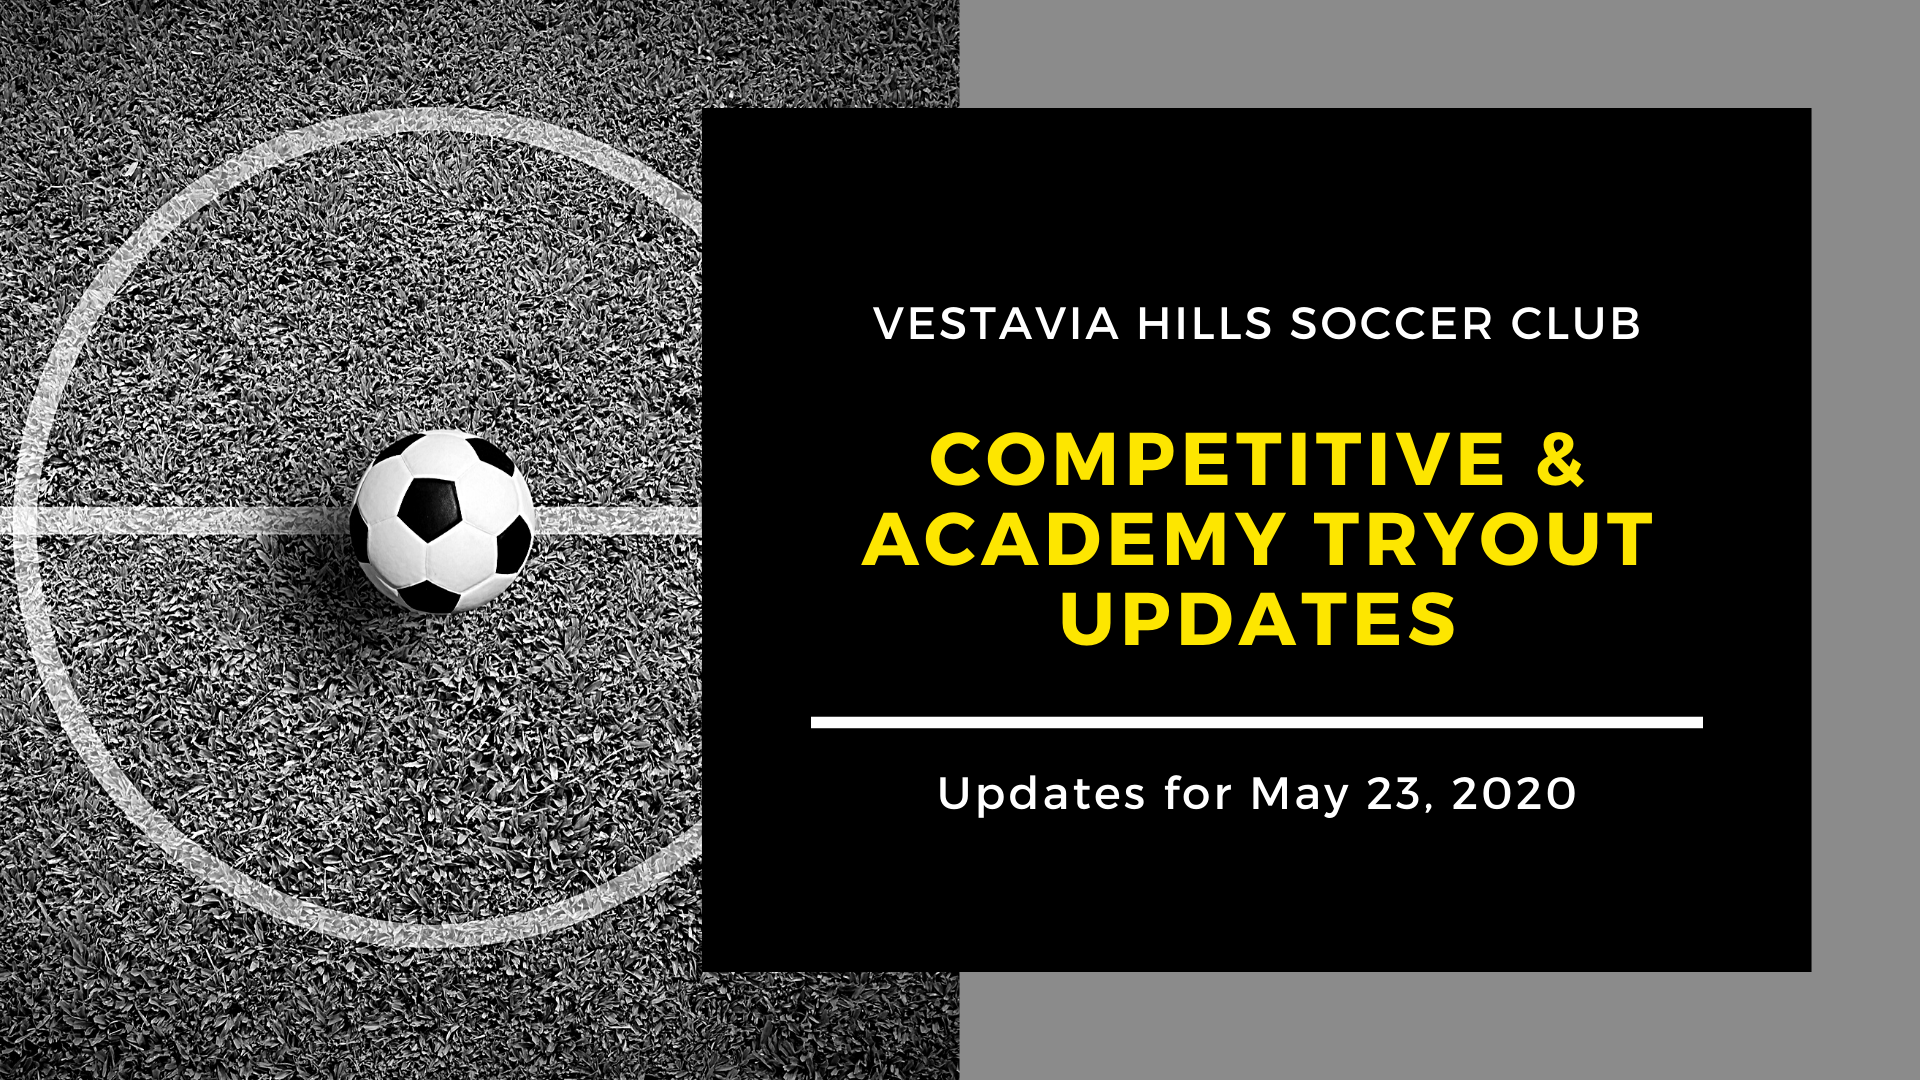 VHSC Tryout Updates May 23, 2020